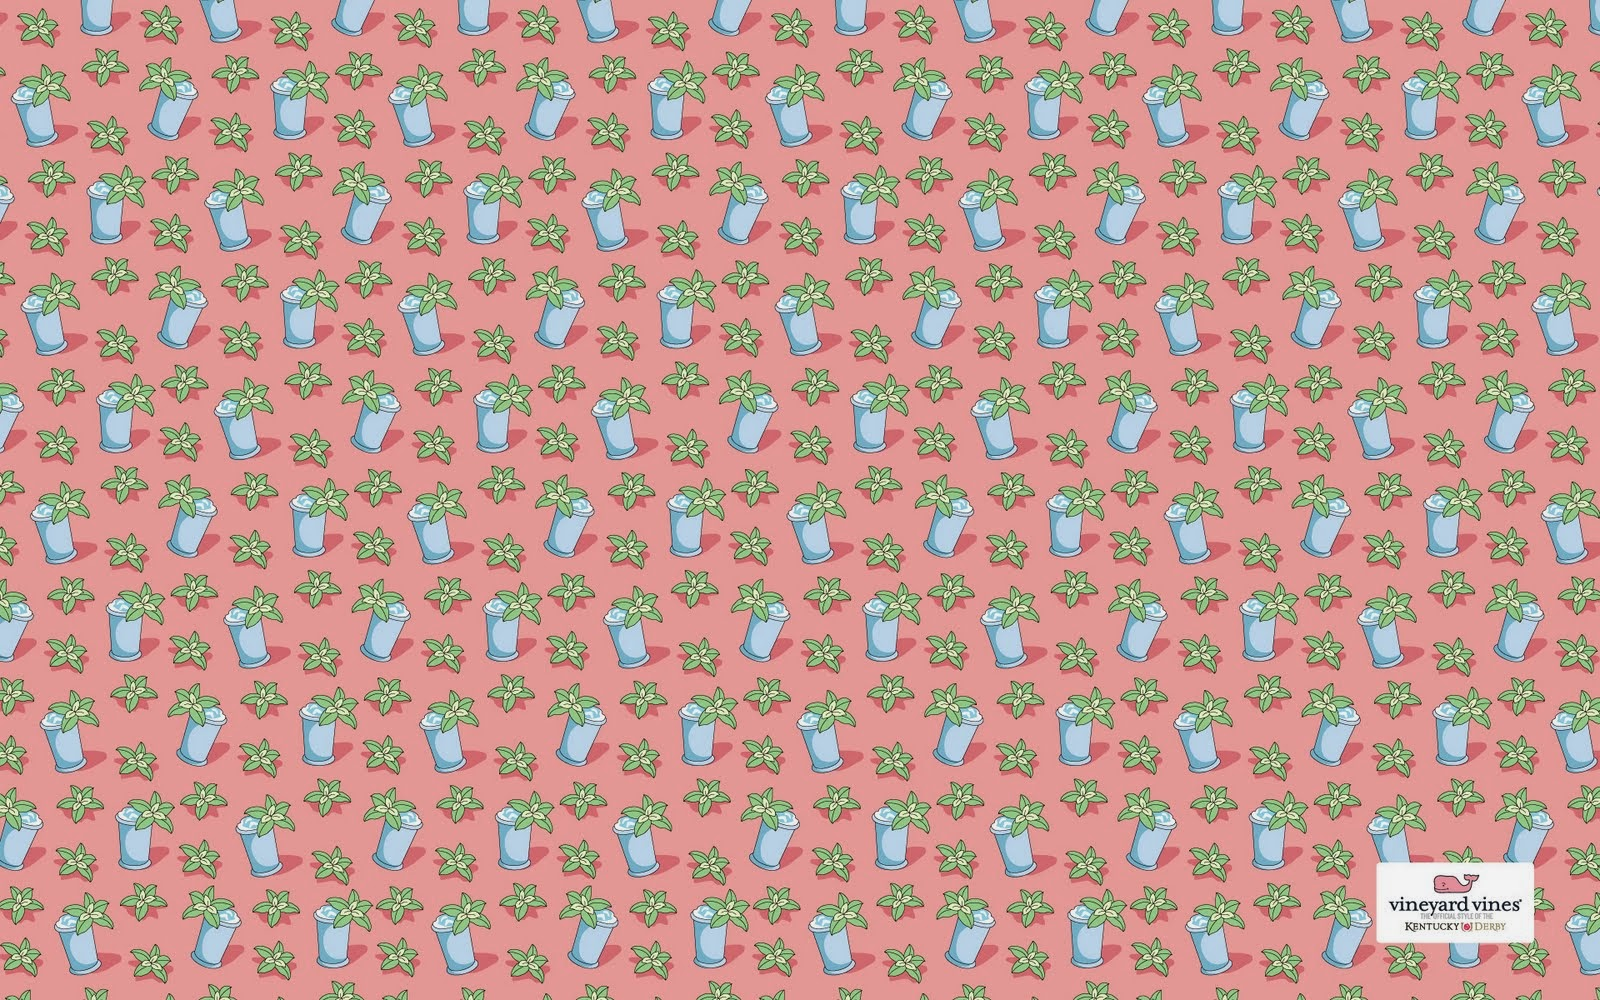 Preppy Princess : vineyard vines wallpapers